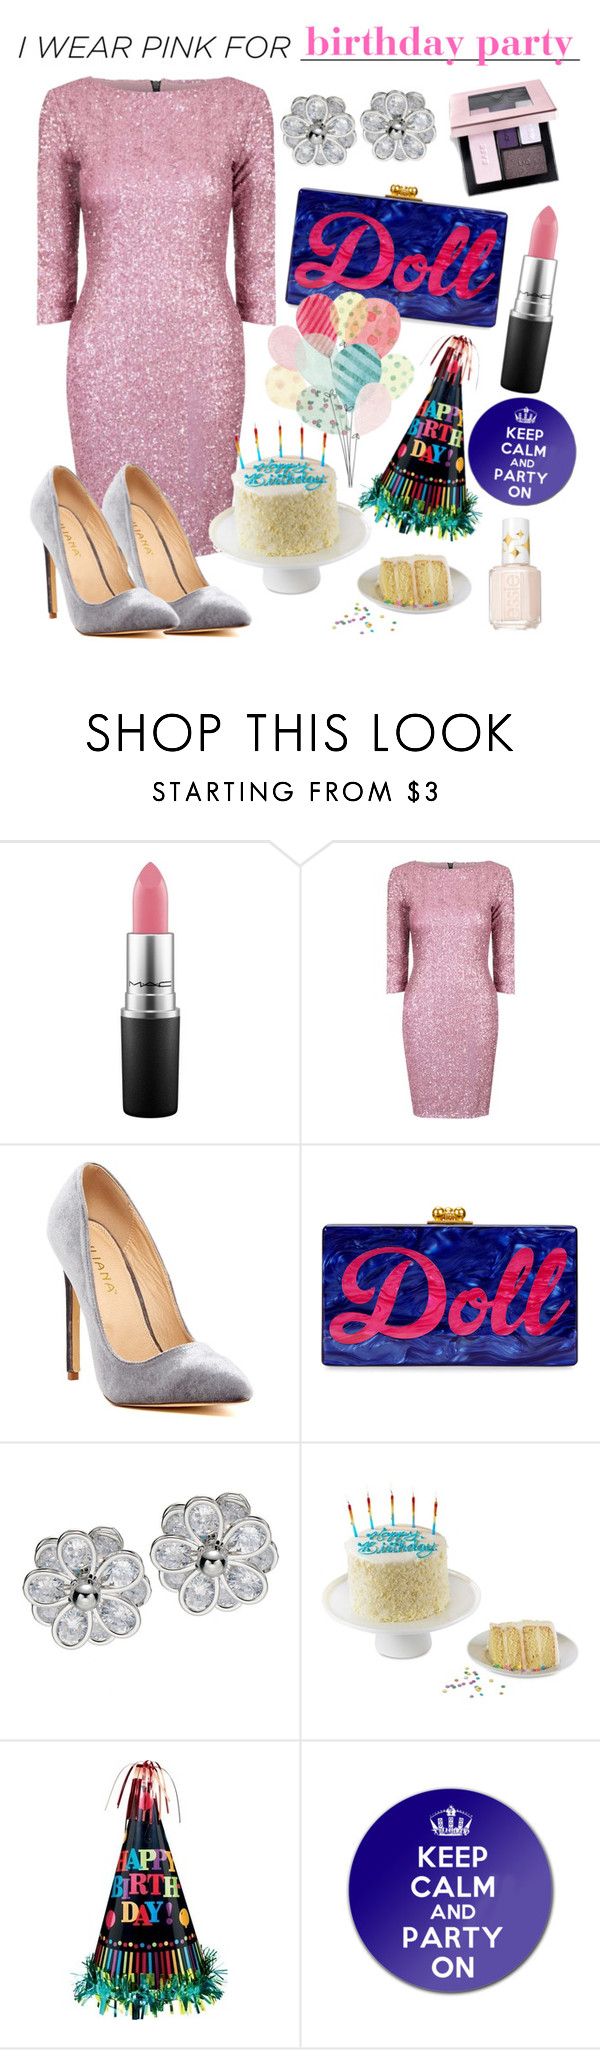 """birthday party"" by unchie18 ❤ liked on Polyvore featuring MAC Cosmetics, Alice & You, Liliana, Edie Parker, We Take the Cake, Essie and IWearPinkFor"